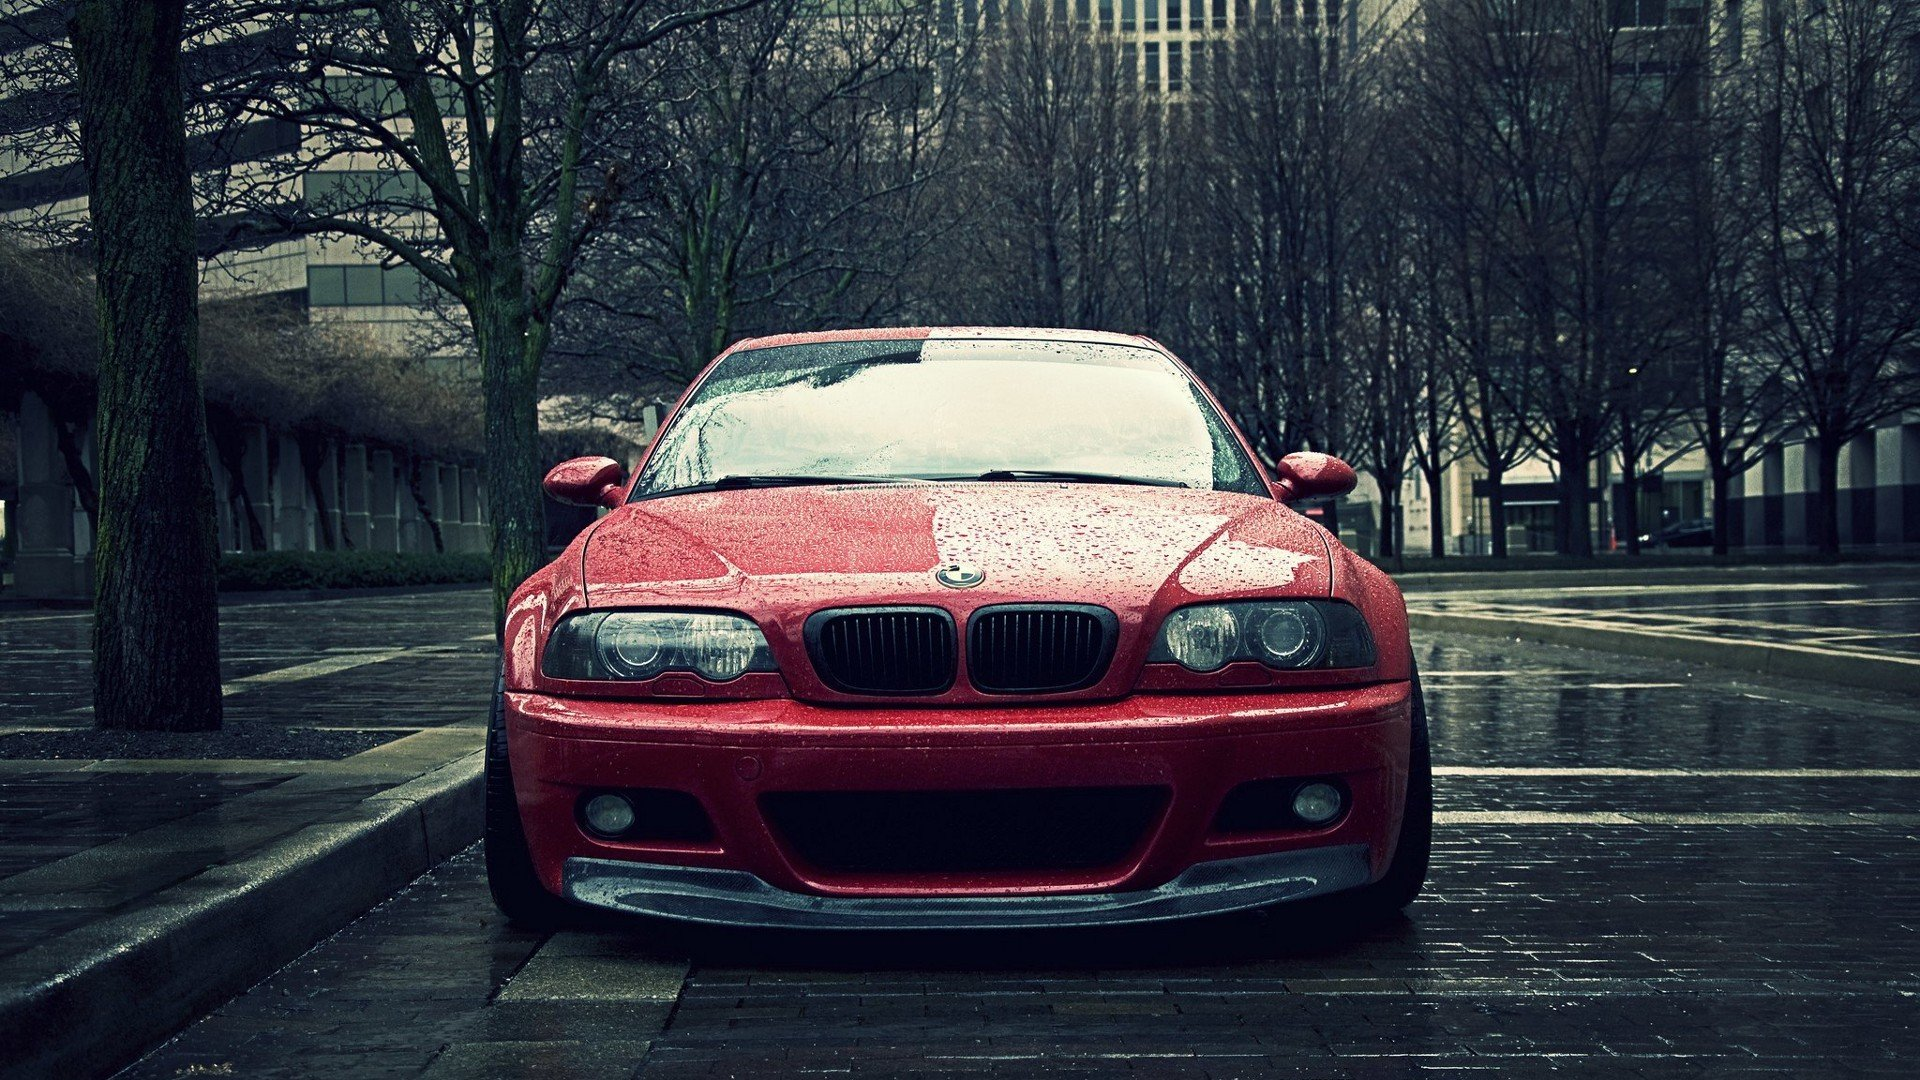 Cars Wallpaper Hd Wallpaper Bmw M3 E46 Car Hd Wallpaper 1920x1080 1336 Wallpaper